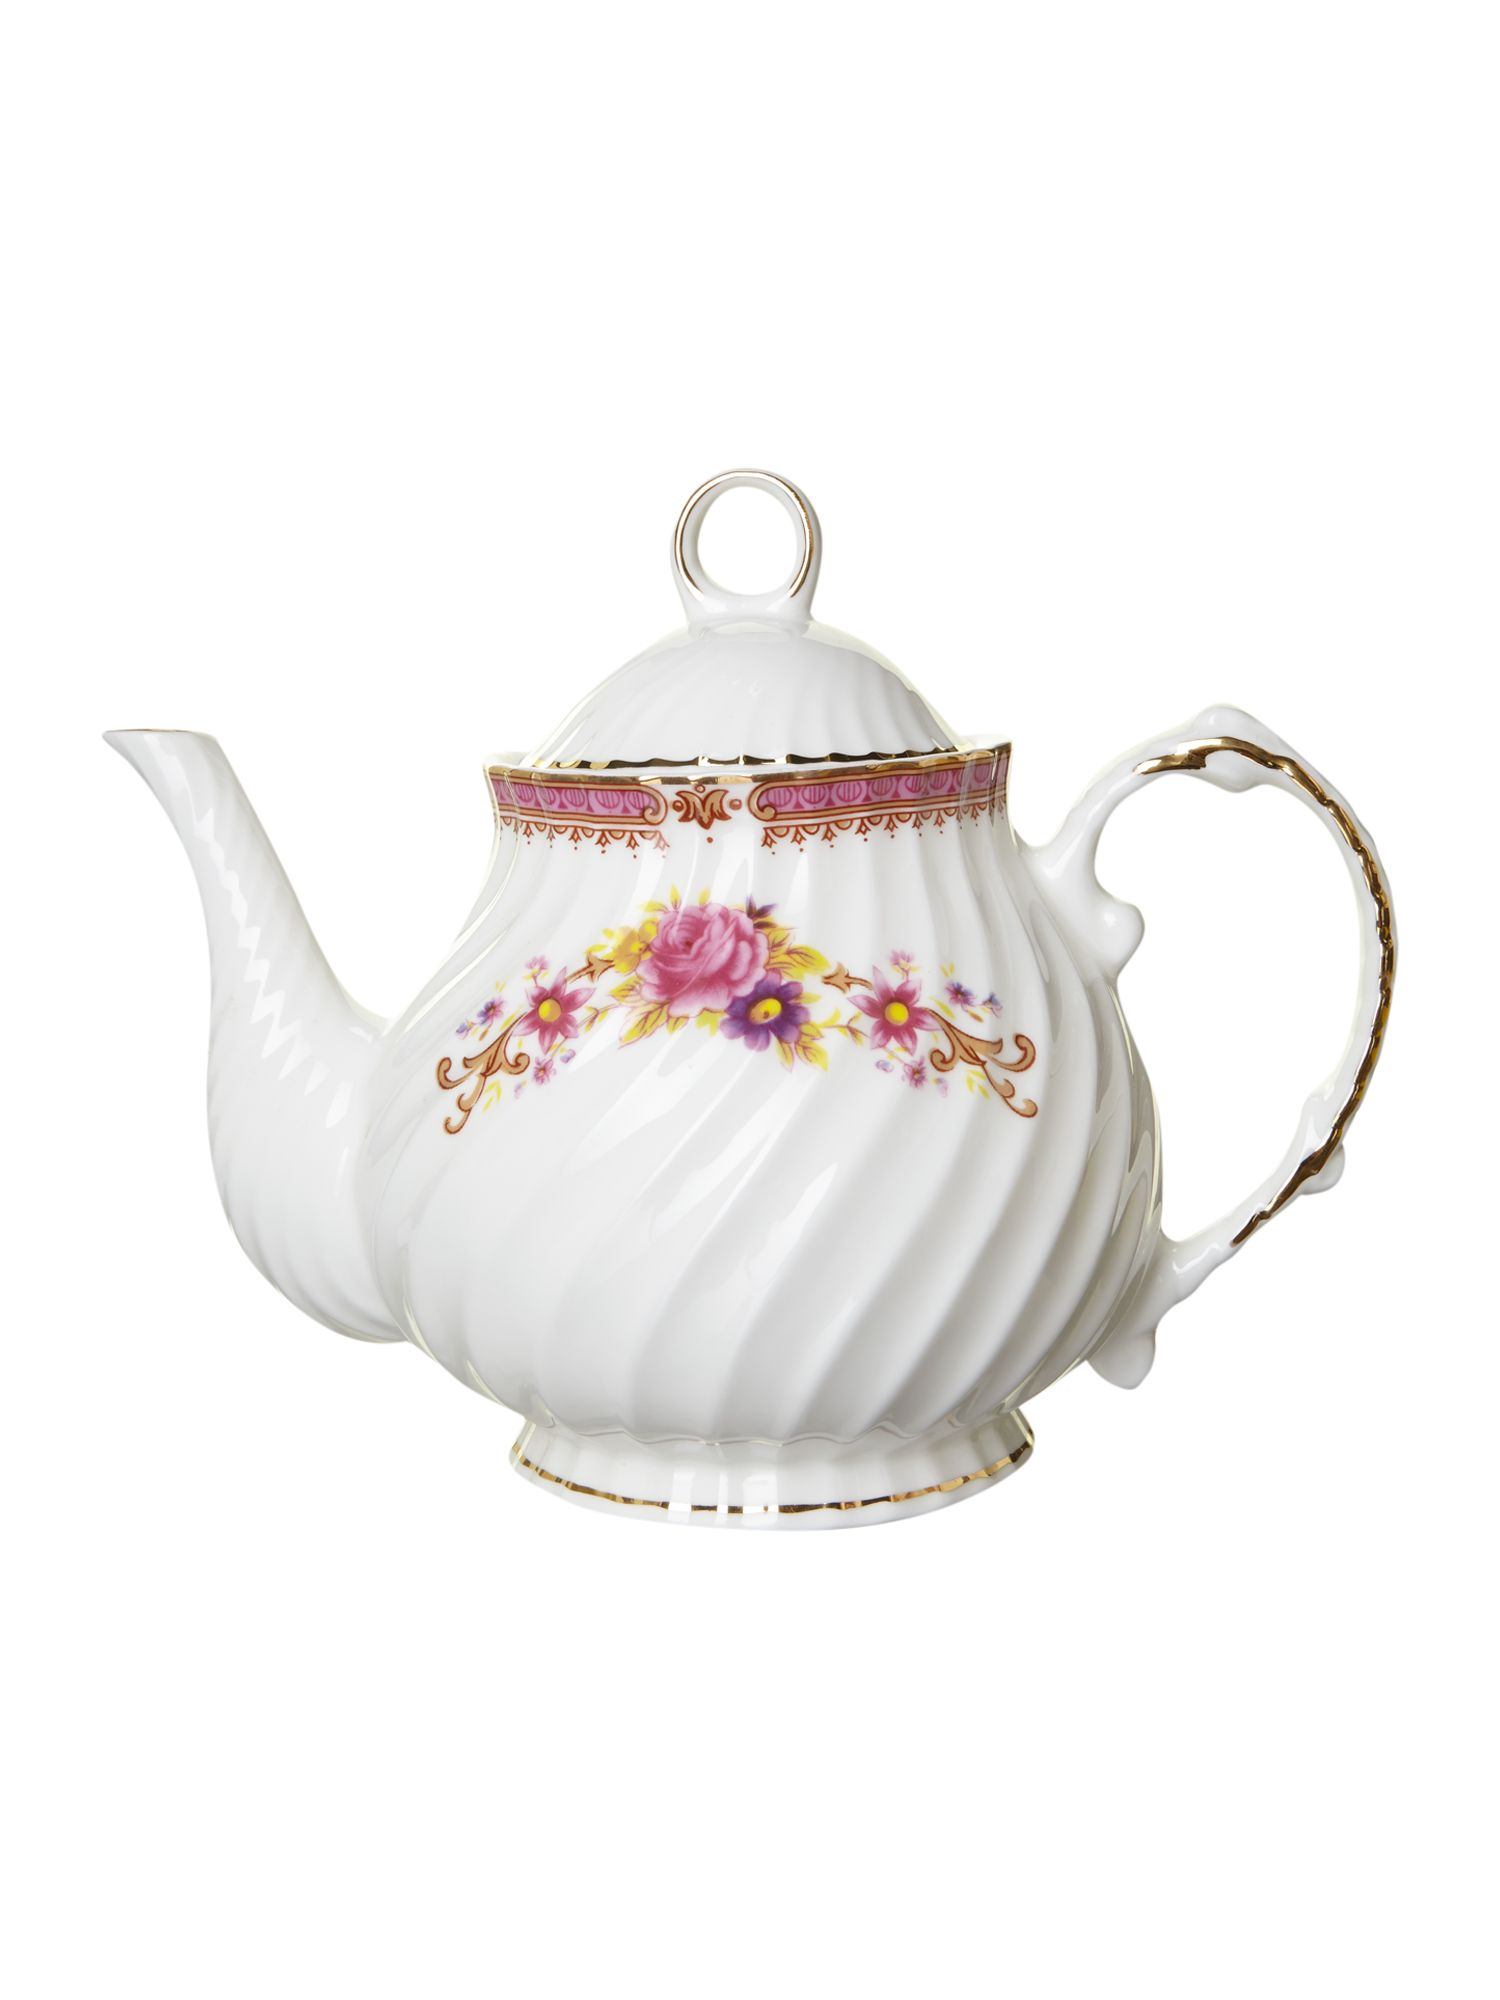 Kensington rose teapot